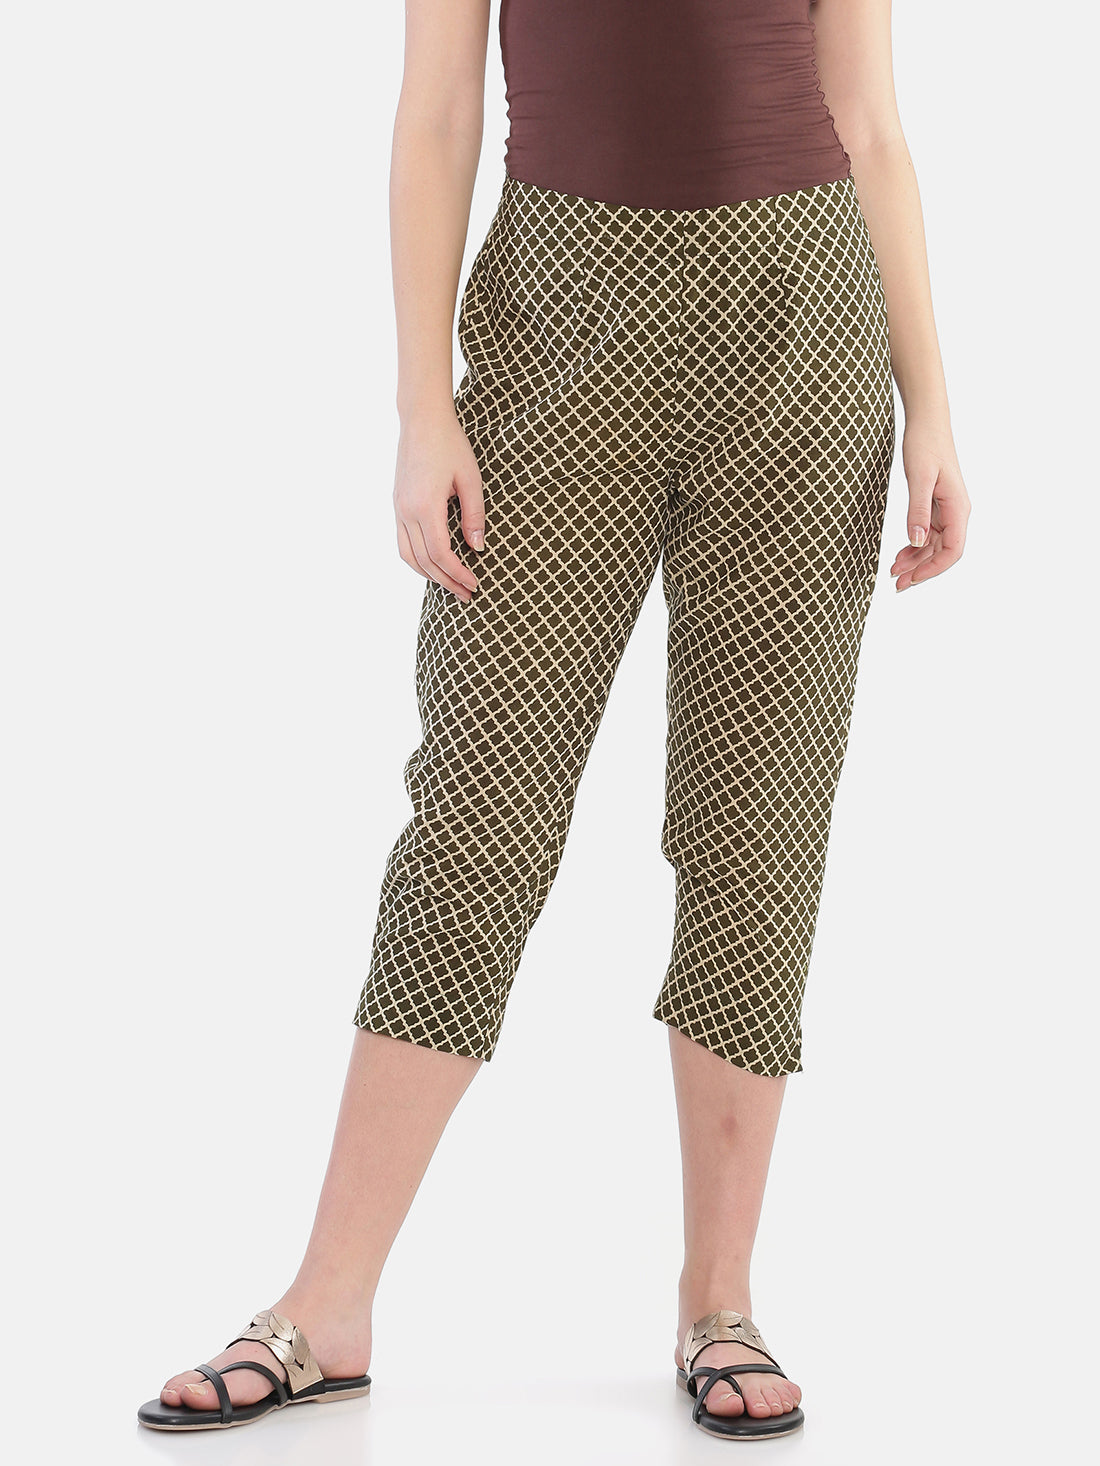 Khaki Naturally Dyed Cotton Hand Block Printed Cropped Cigarette Pants